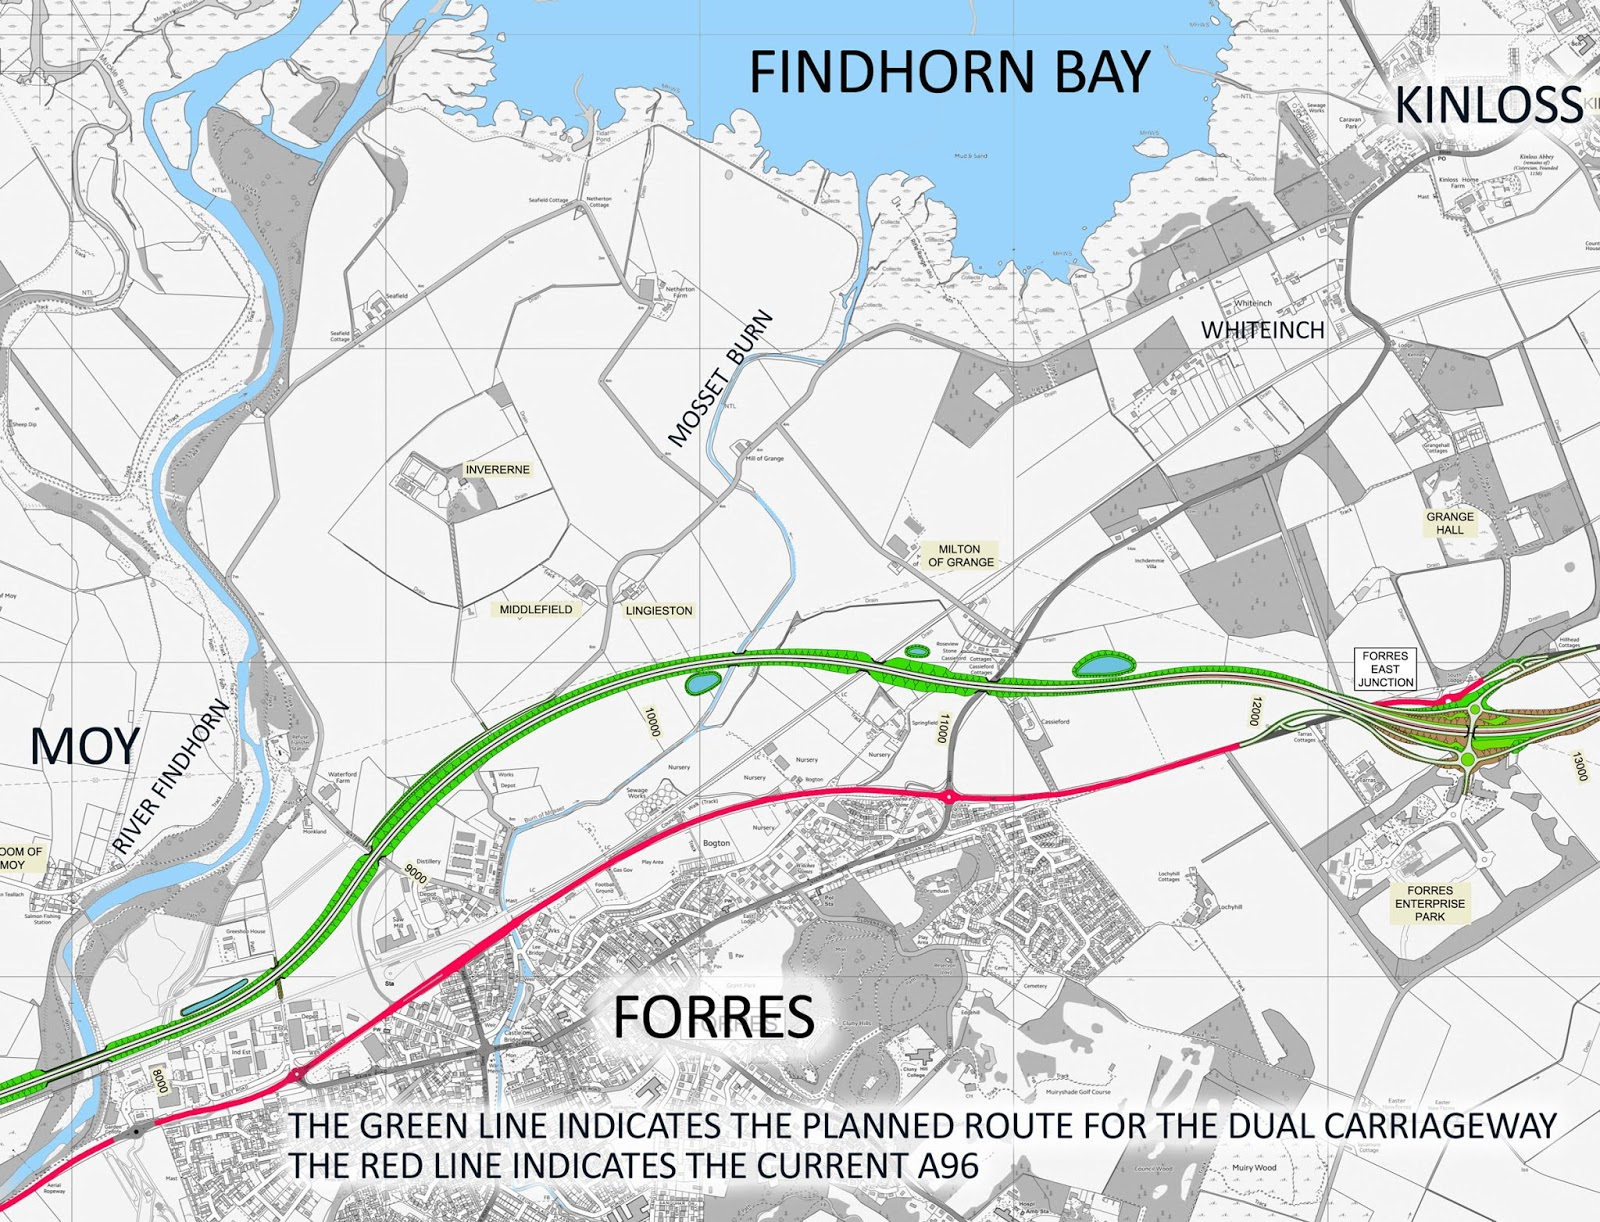 Findhorn Scotland Map.Forres A96 Dualling Latest News Maps Of The Route